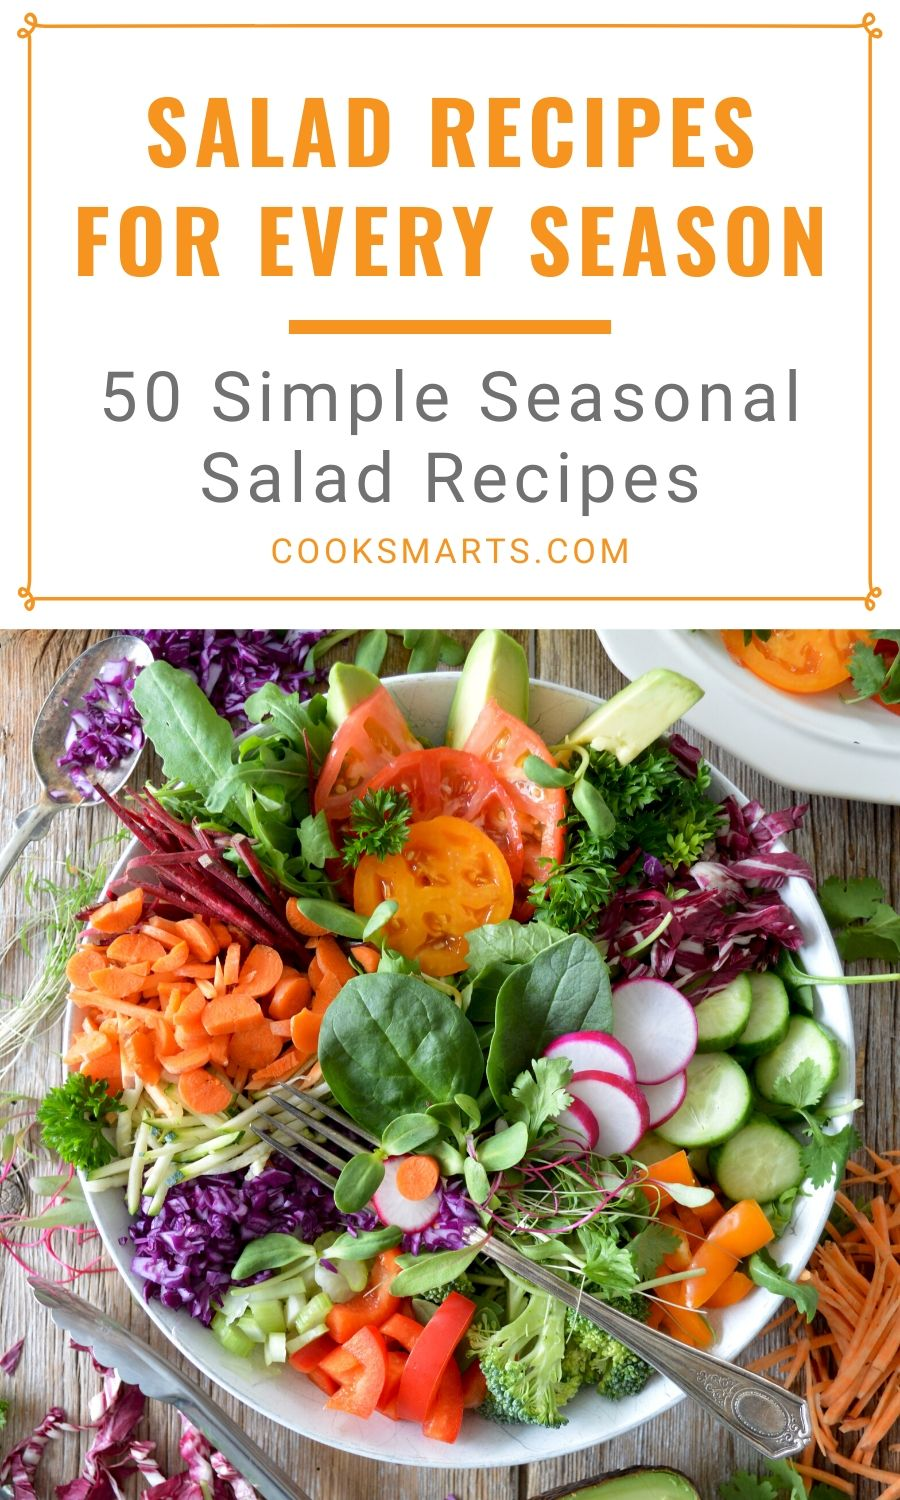 50 Creative Salad Recipes | Cook Smarts